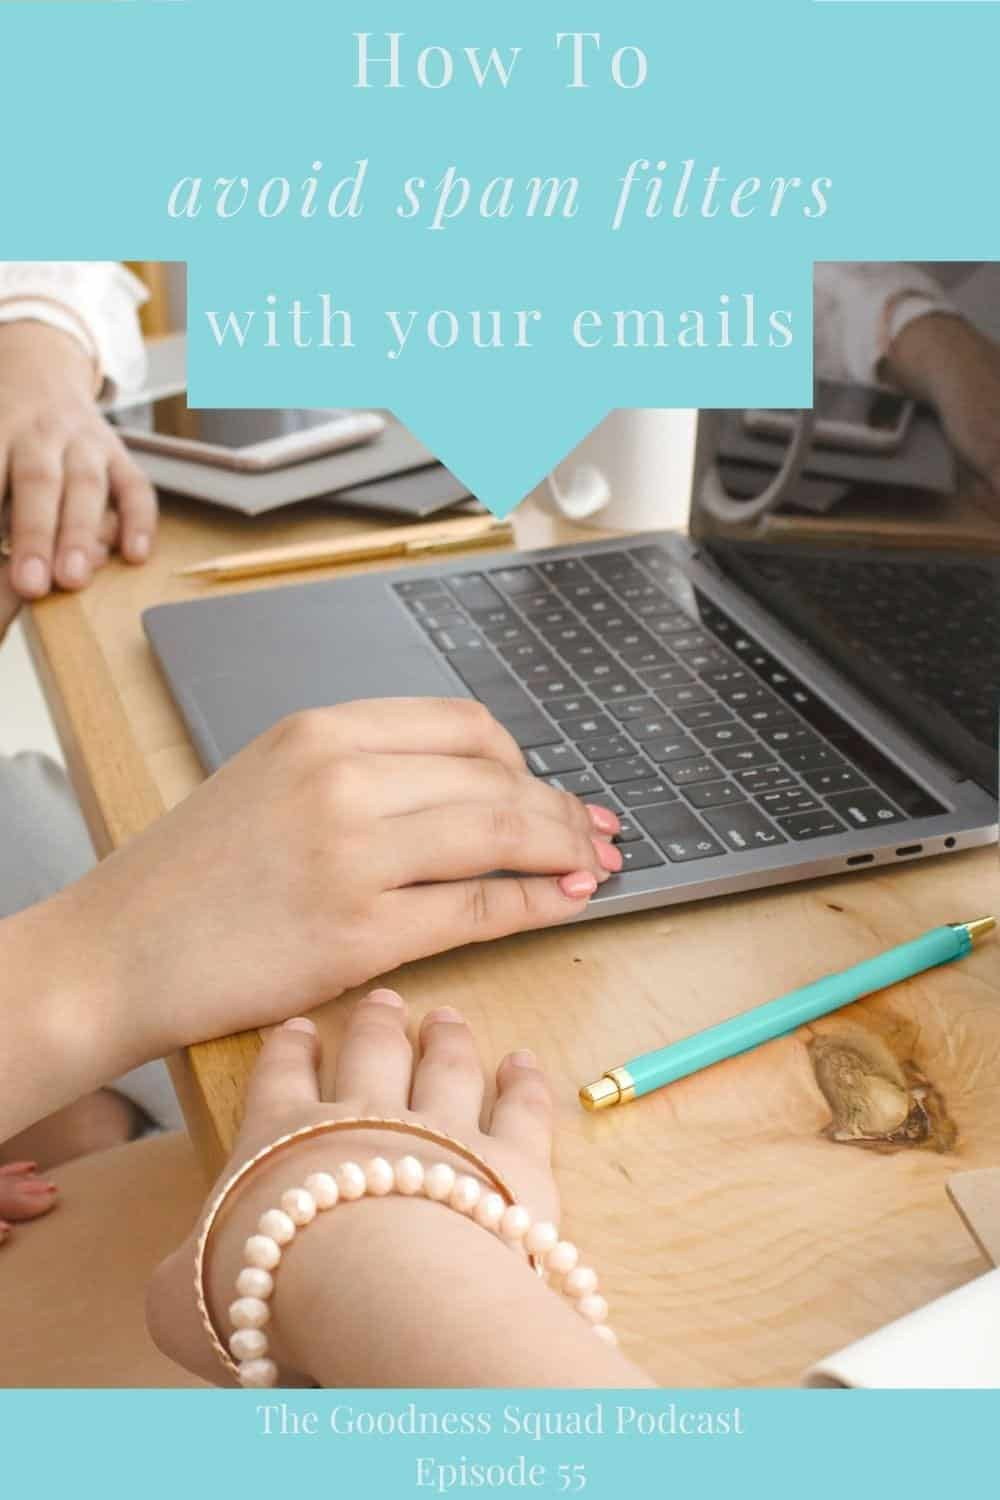 055_8 helpful tips that will get your emails past the hated spam filters